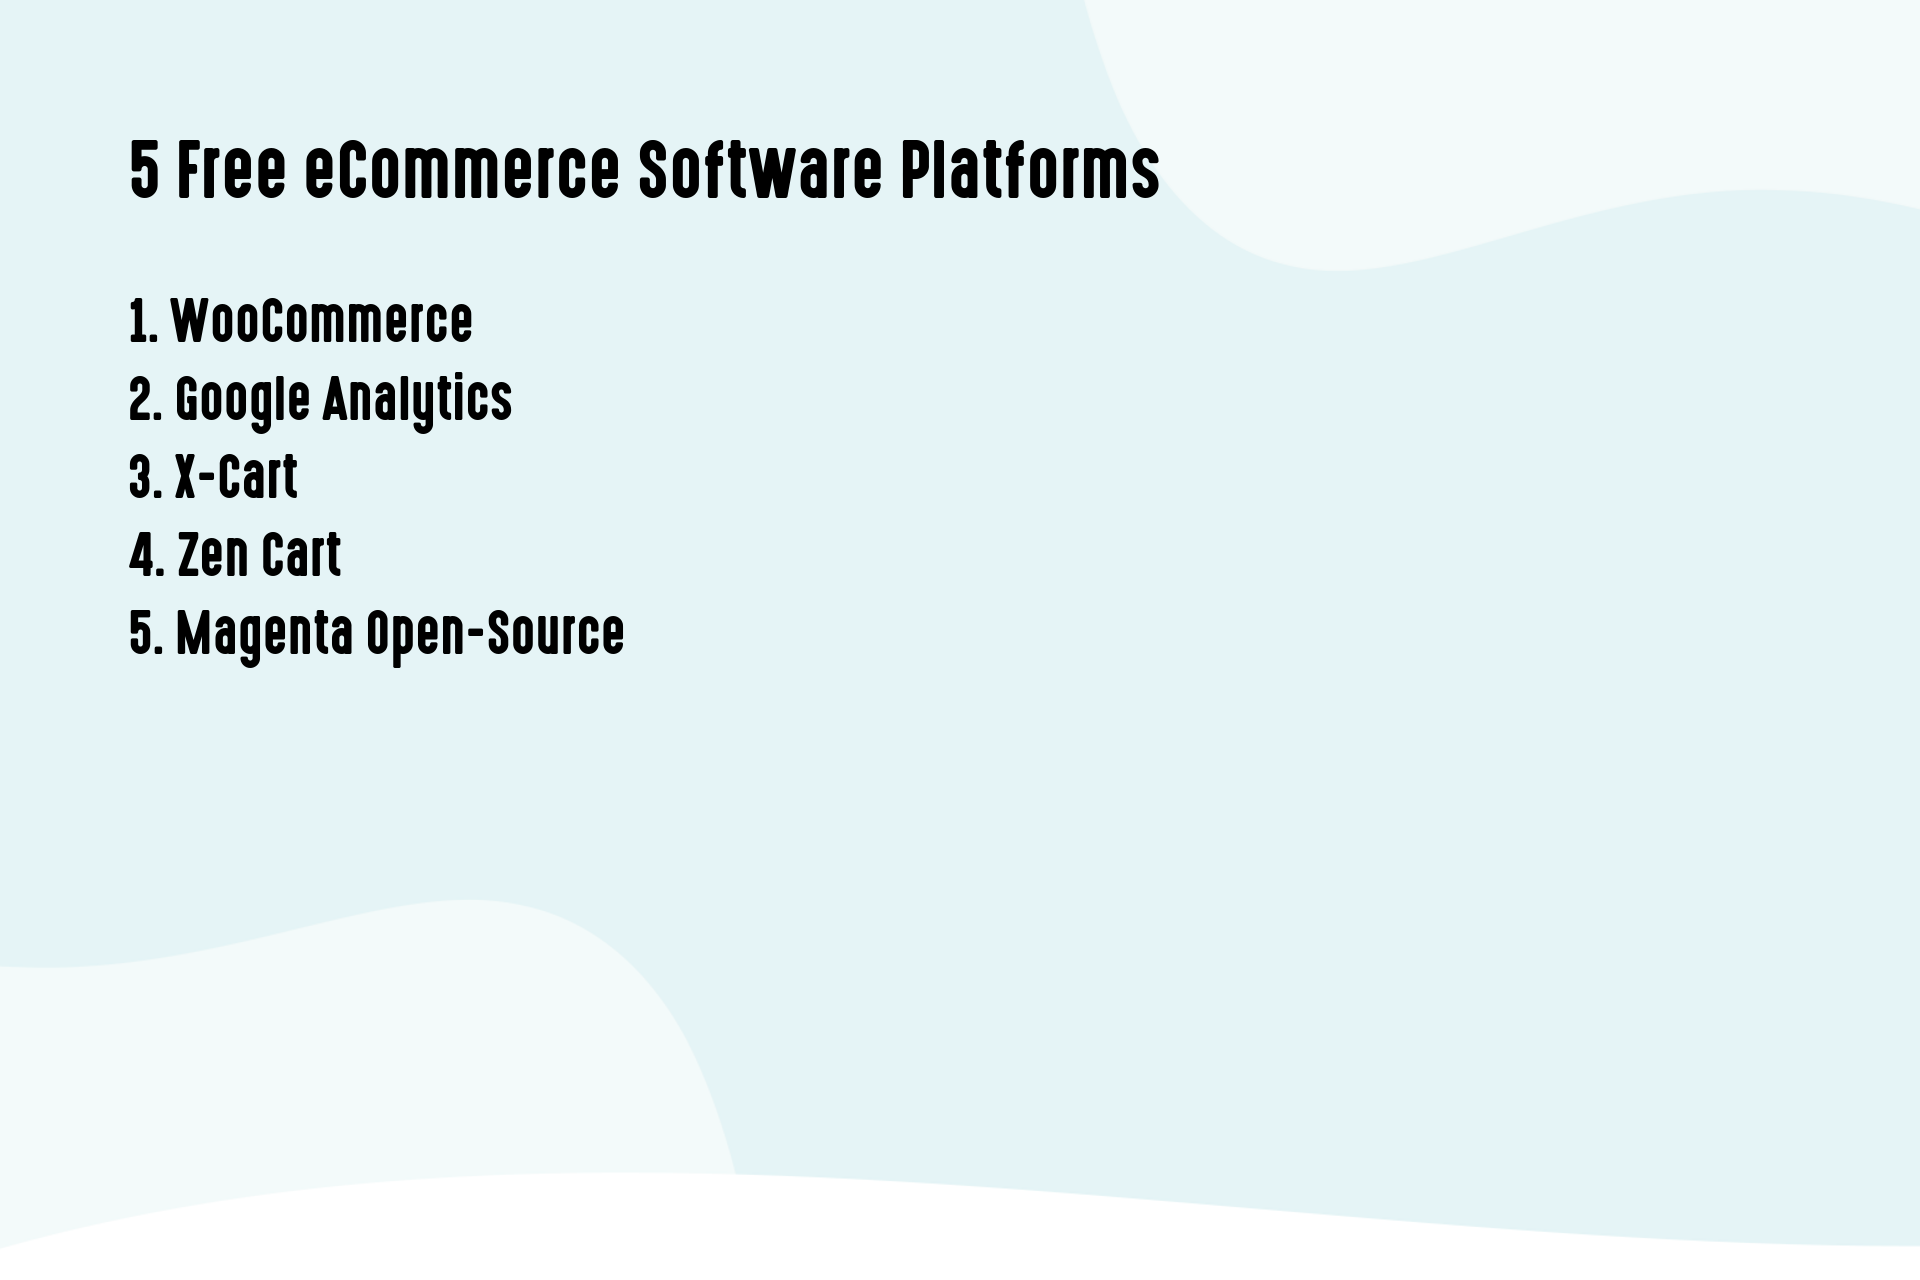 5 Free eCommerce Software Platforms